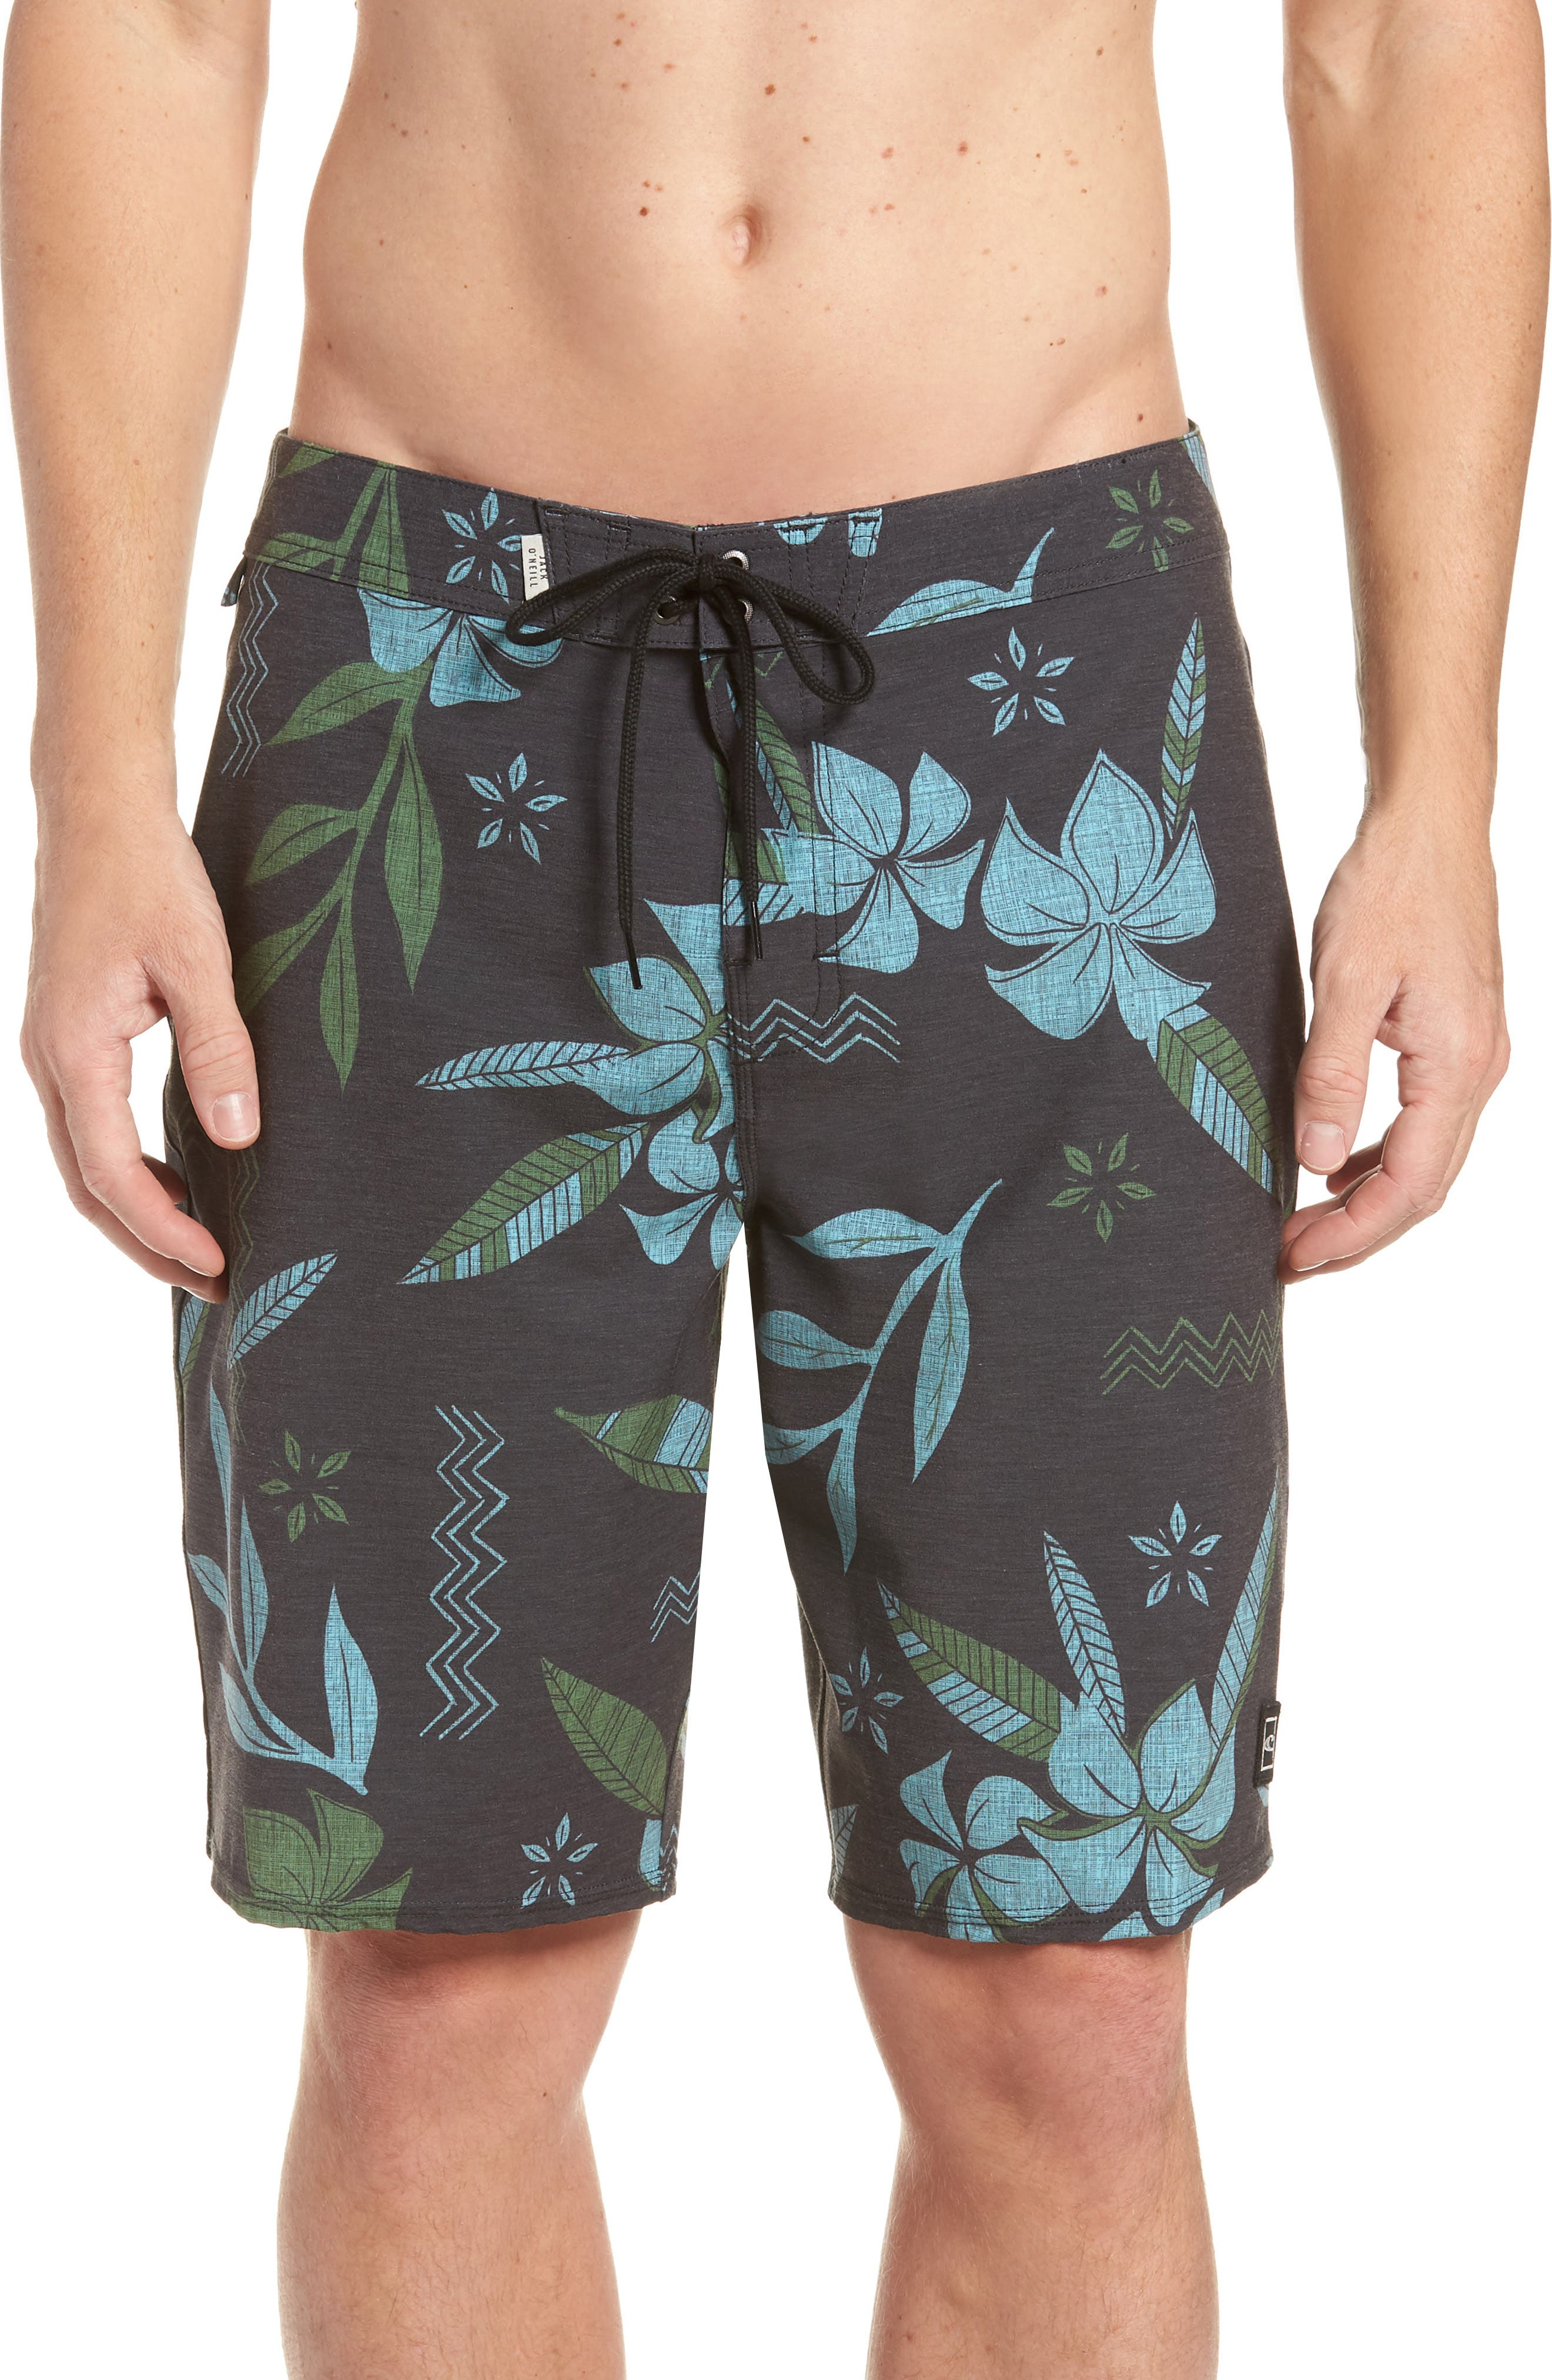 Maui Board Shorts,                             Main thumbnail 1, color,